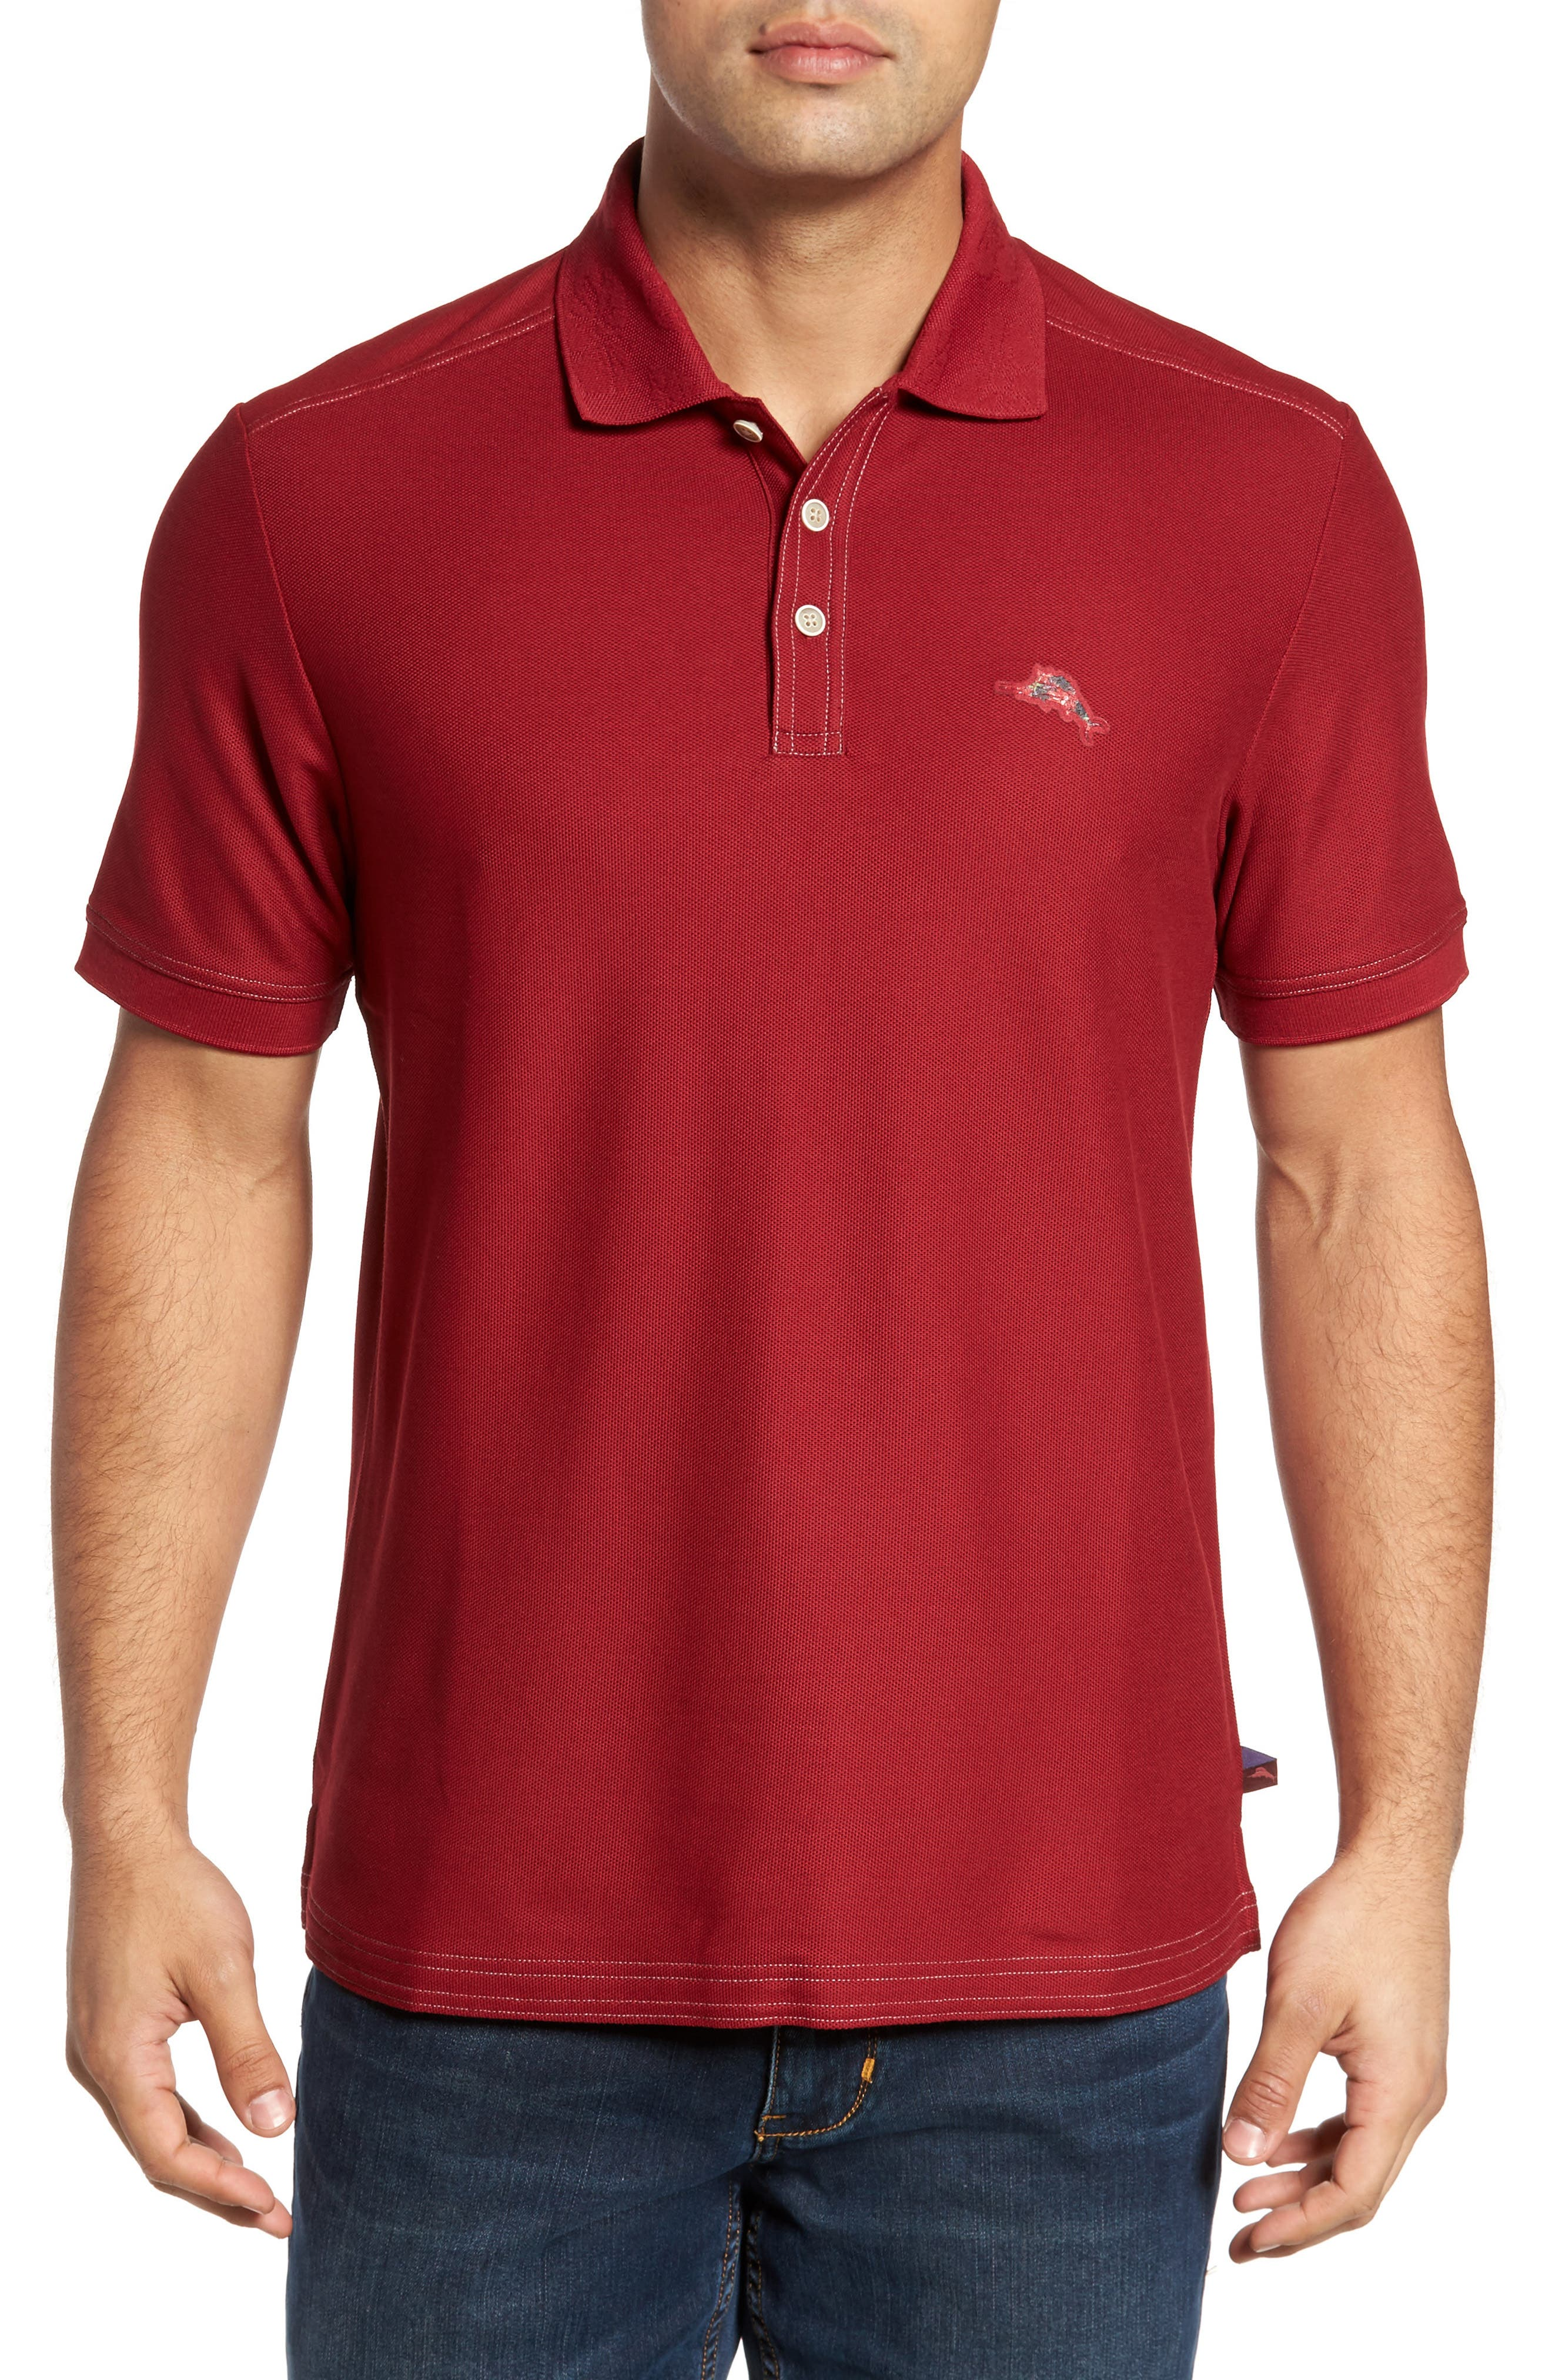 Main Image - Tommy Bahama Limited Edition Poinsettia Emfielder Piqué Polo